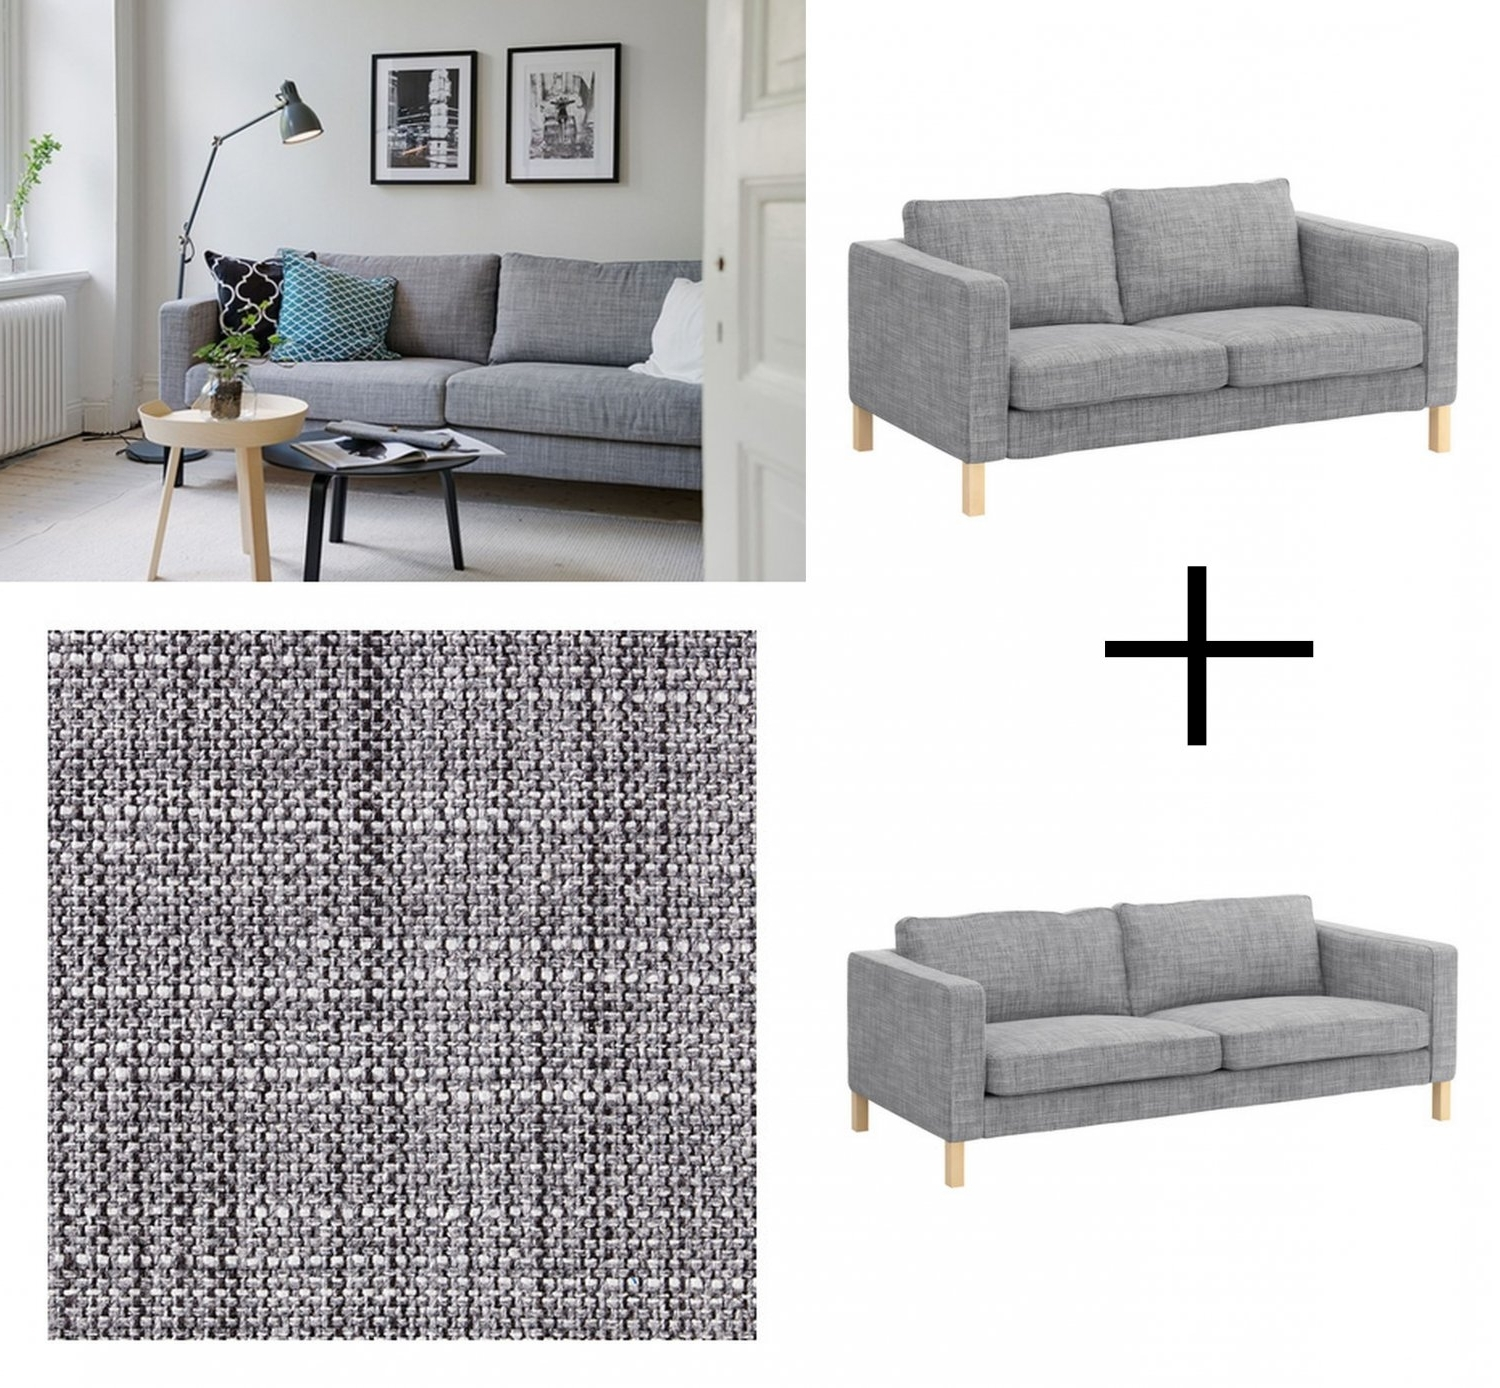 Fashionable Karlstad Sofa And Loveseat Slipcover Cover Isunda Gray Grey Linen With Regard To Karlstad Chaise Covers (View 8 of 15)